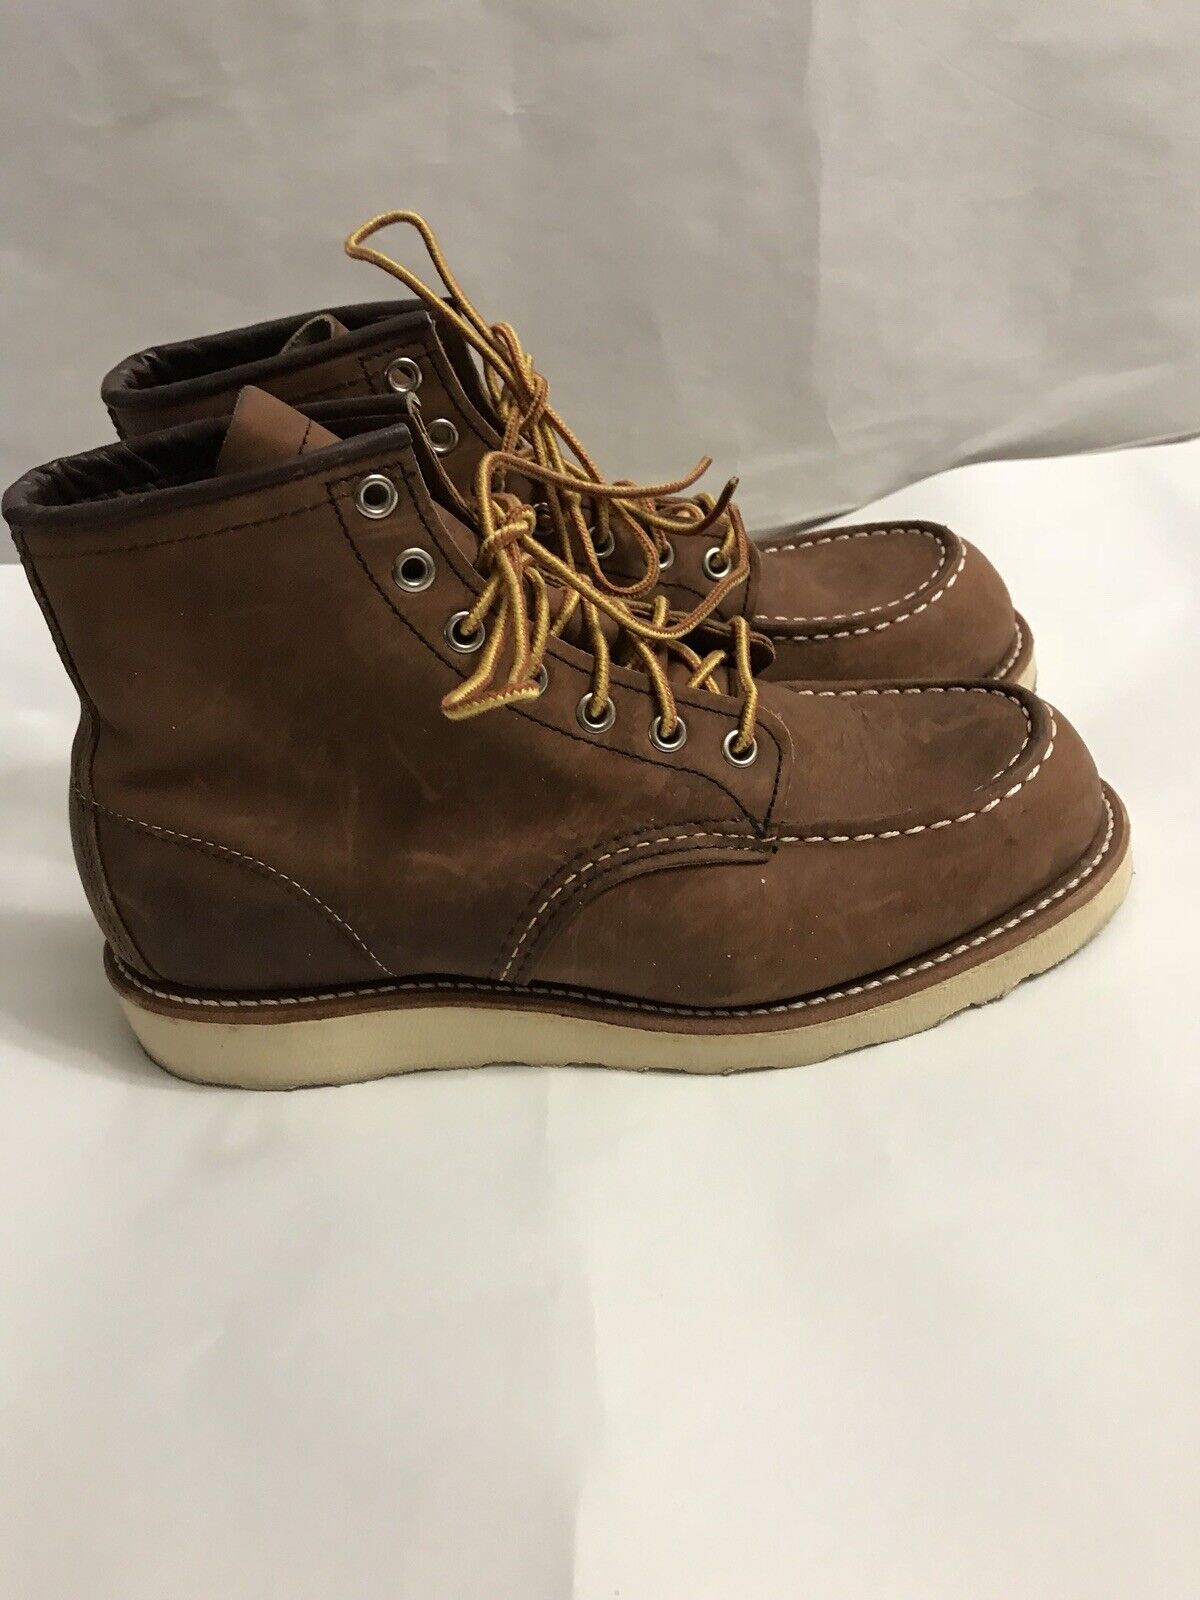 B-497 Red Wing 8880 Classic Moc Boots 6  Size 7 D